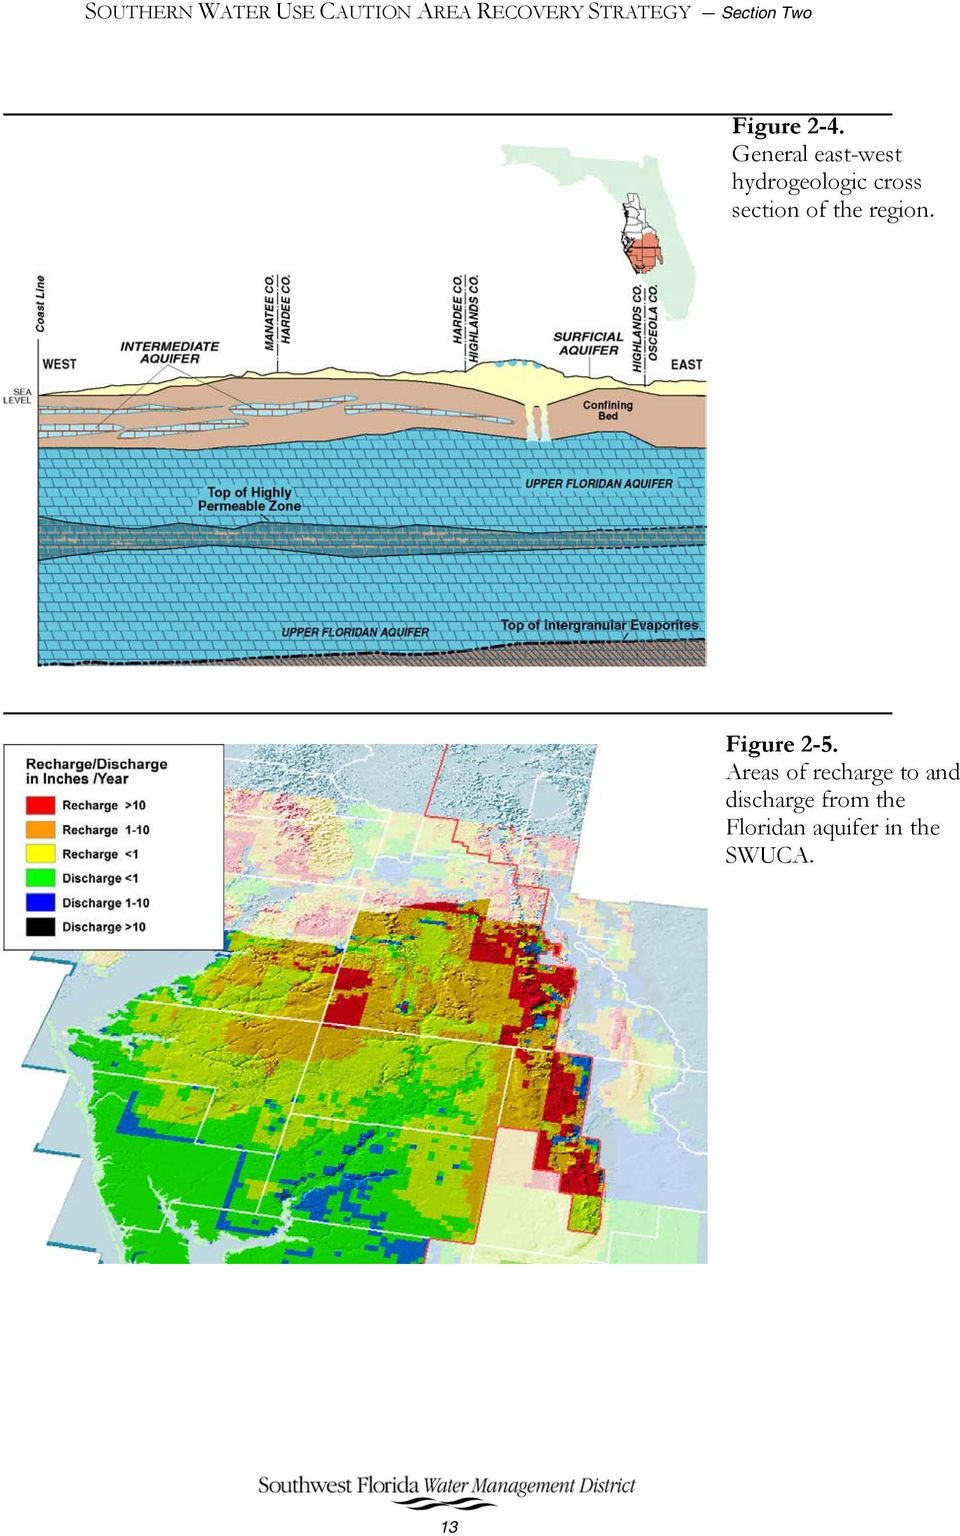 General east-west hydrogeologic cross section of the